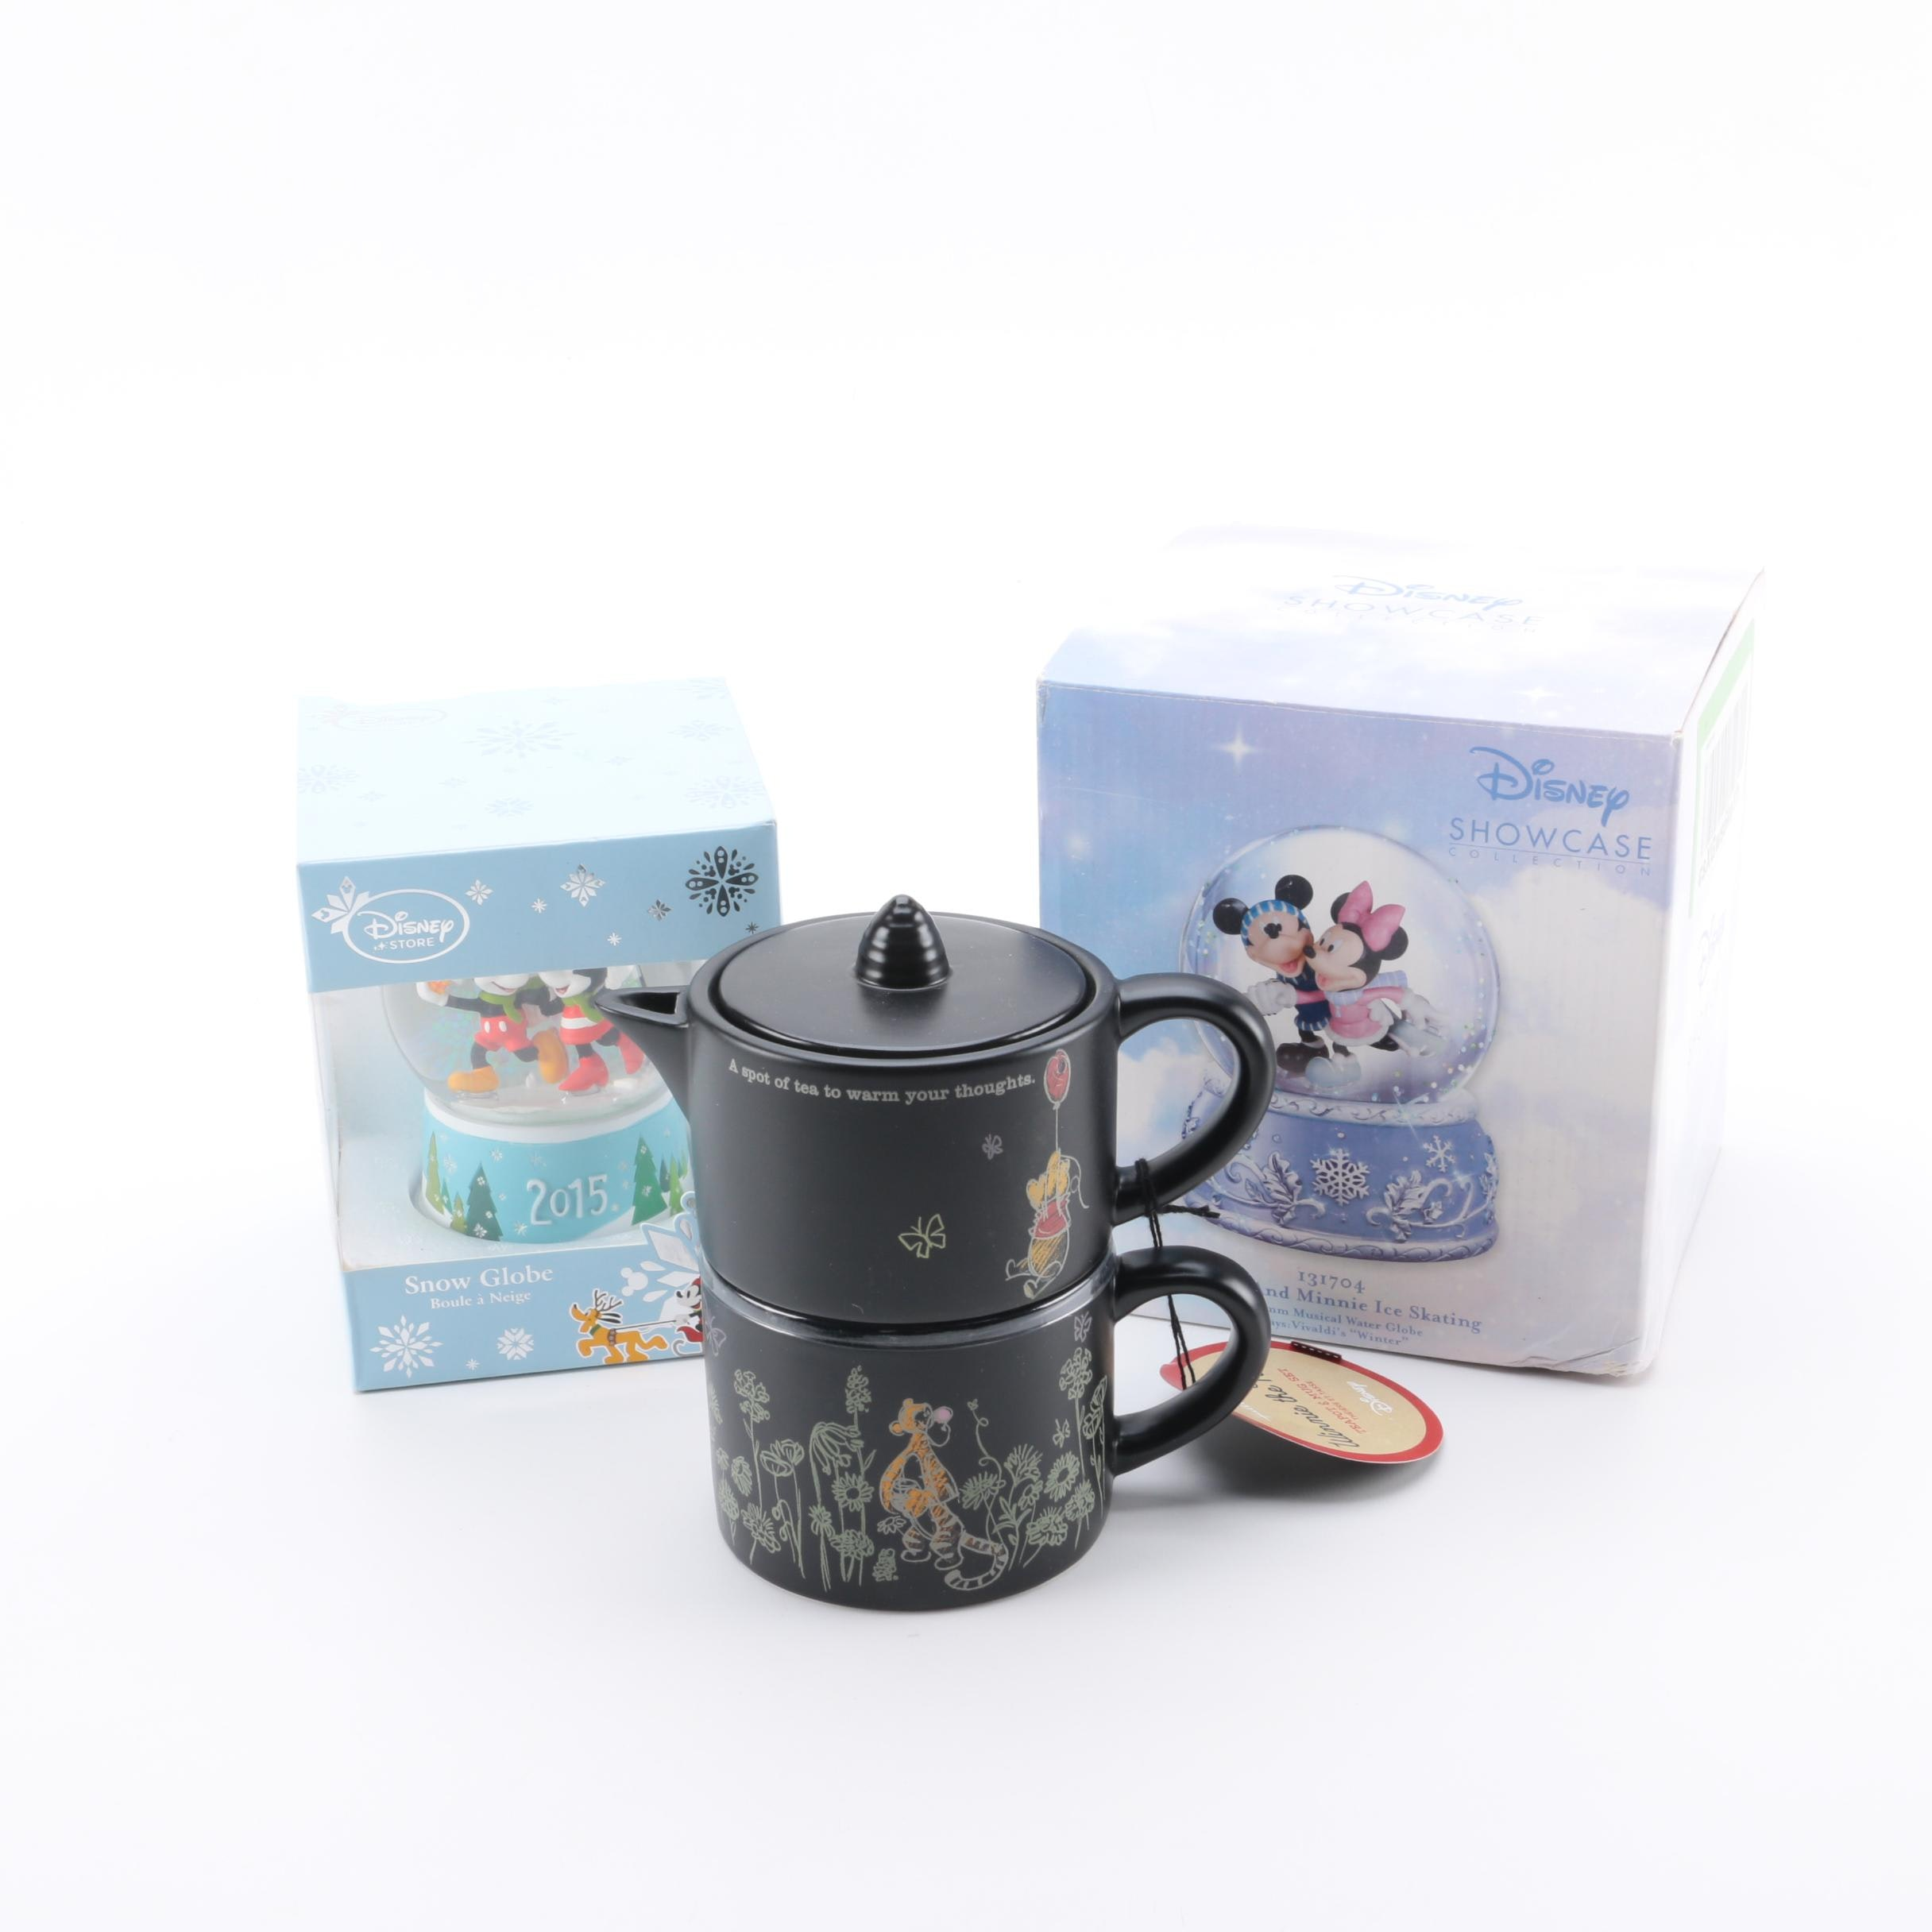 Disney Snow Globes and Hallmark Winnie the Pooh Tea for One Ceramic Teapot Set